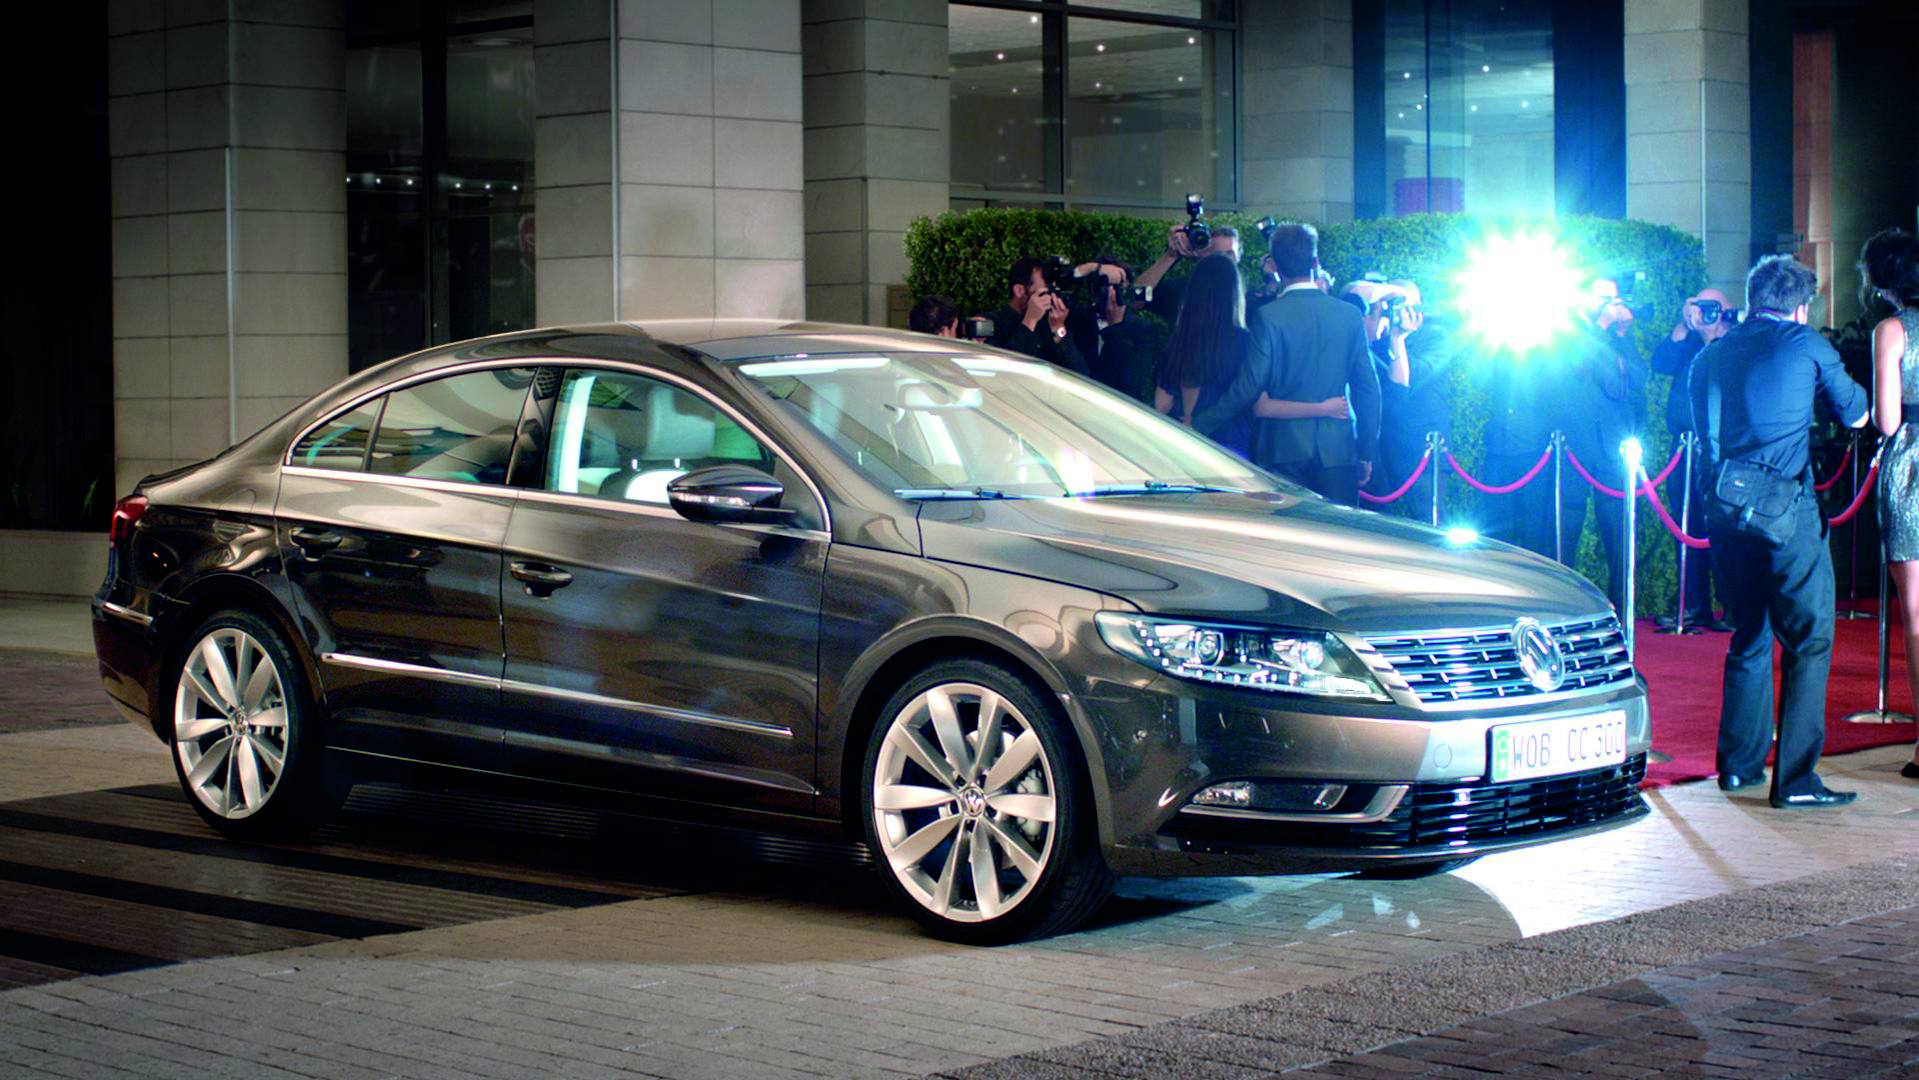 Volkswagen Planning on Producing New CC & Alltrack Passat Models - CardinaleWay Volkswagen